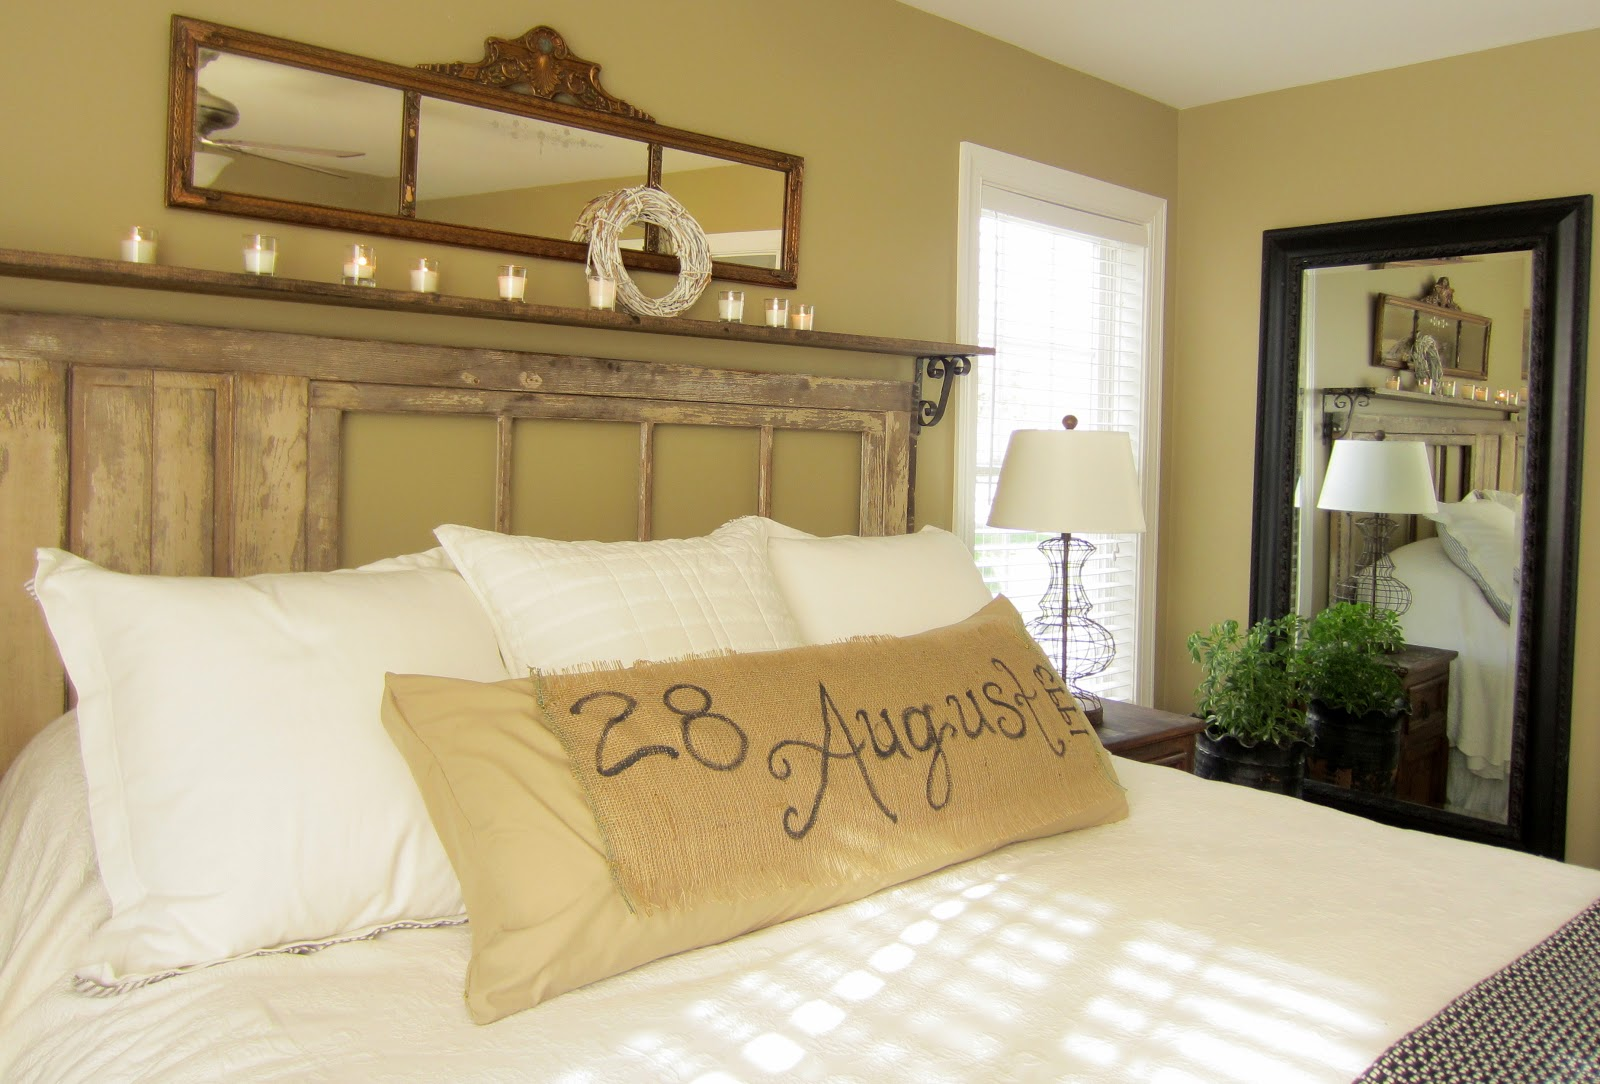 Romantic Master Bedroom Decorating Ideas: Down To Earth Style: {Vintage, Rustic Master Bedroom}